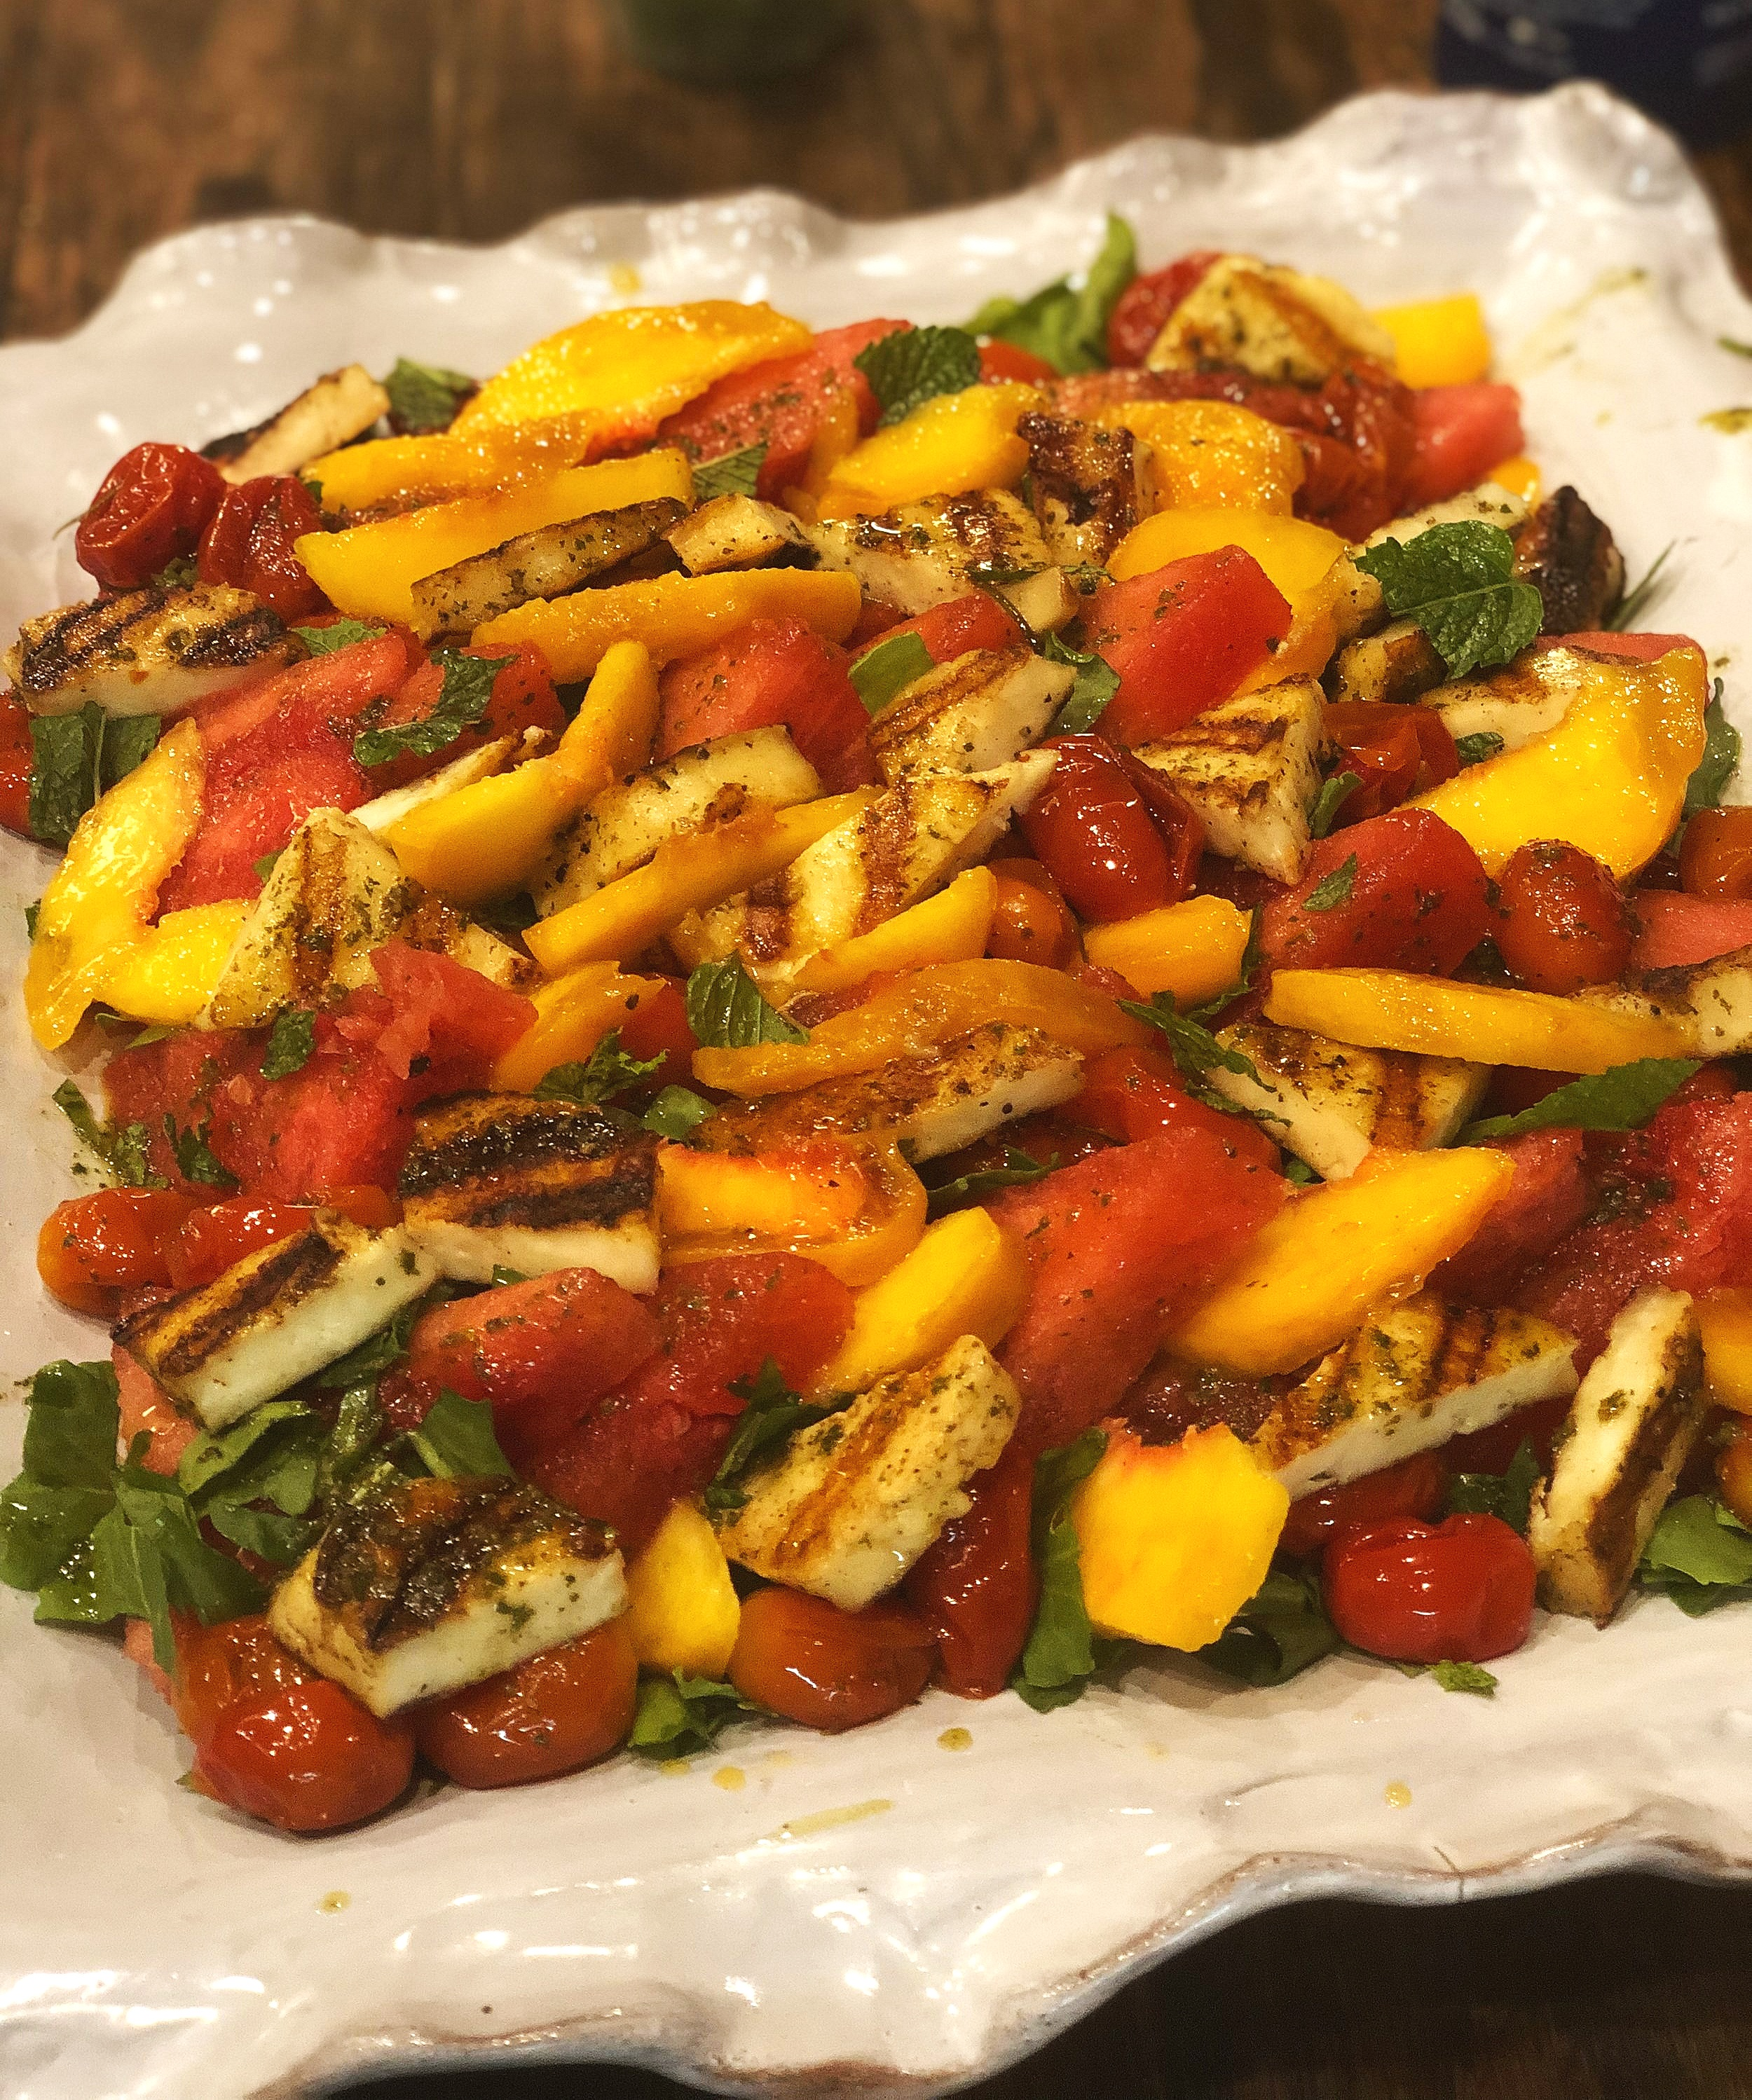 We tucked in some fresh peaches into this salad